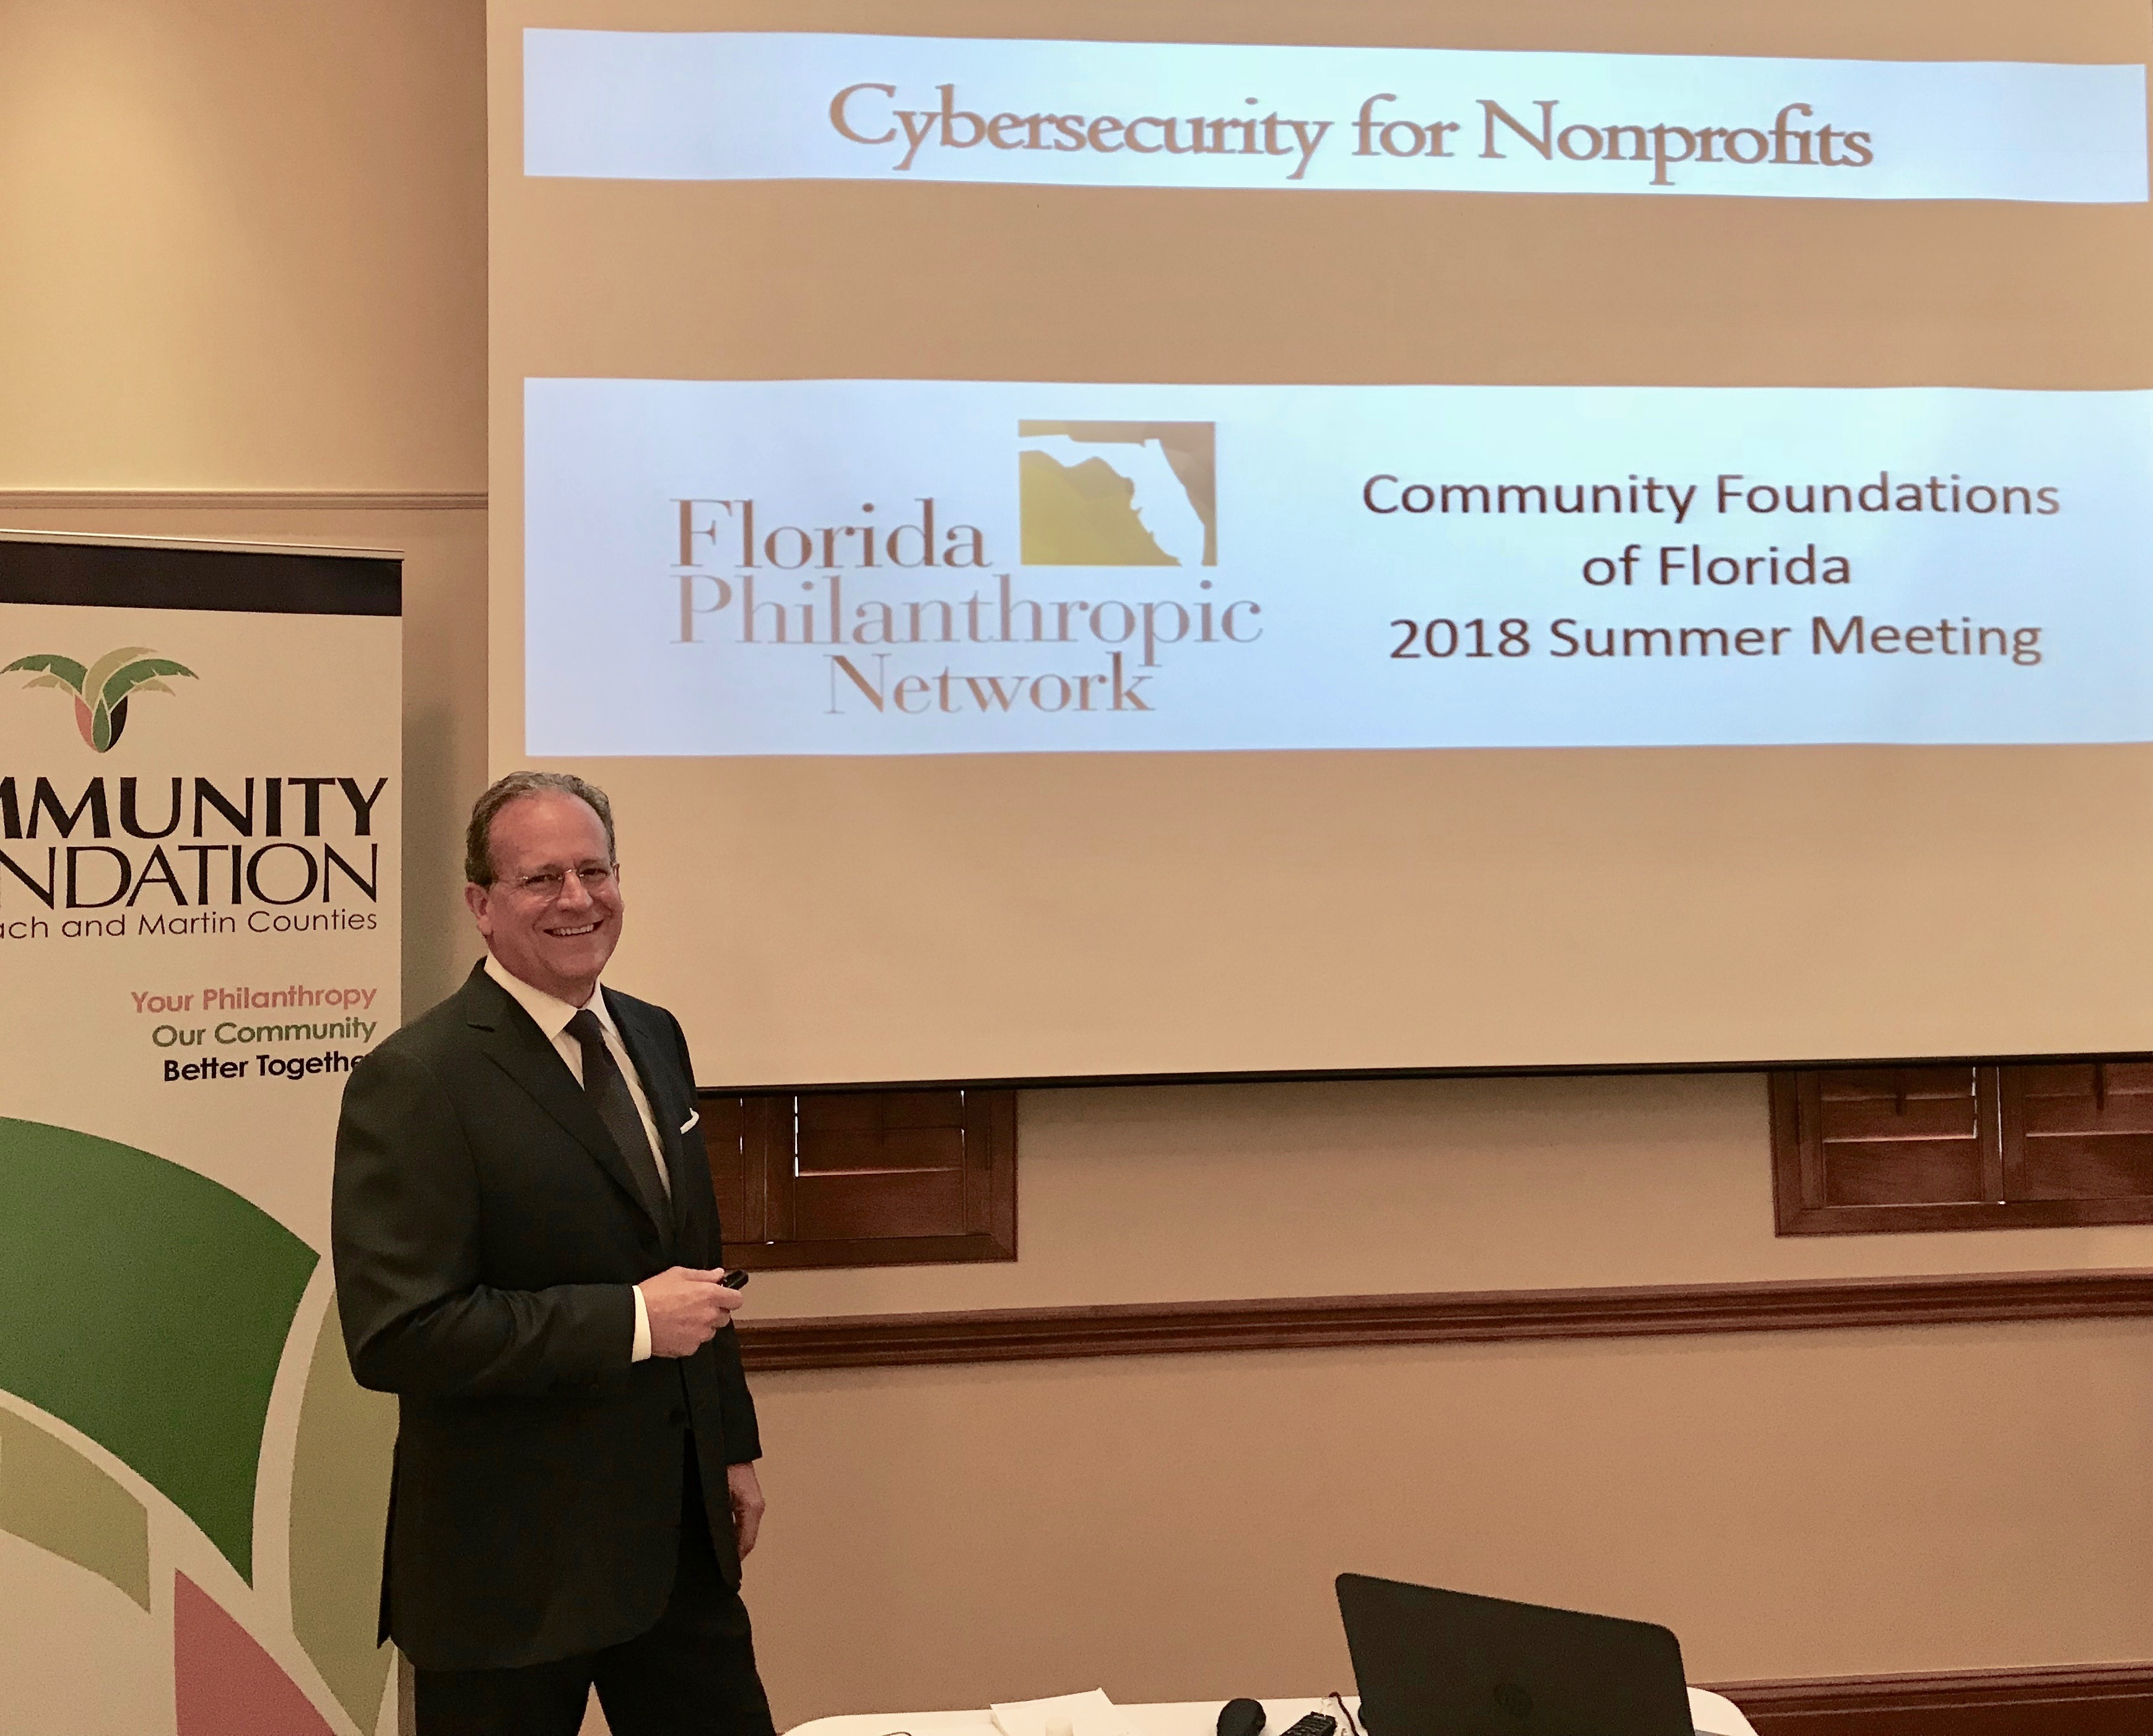 brad cybersec for nonprofits-1